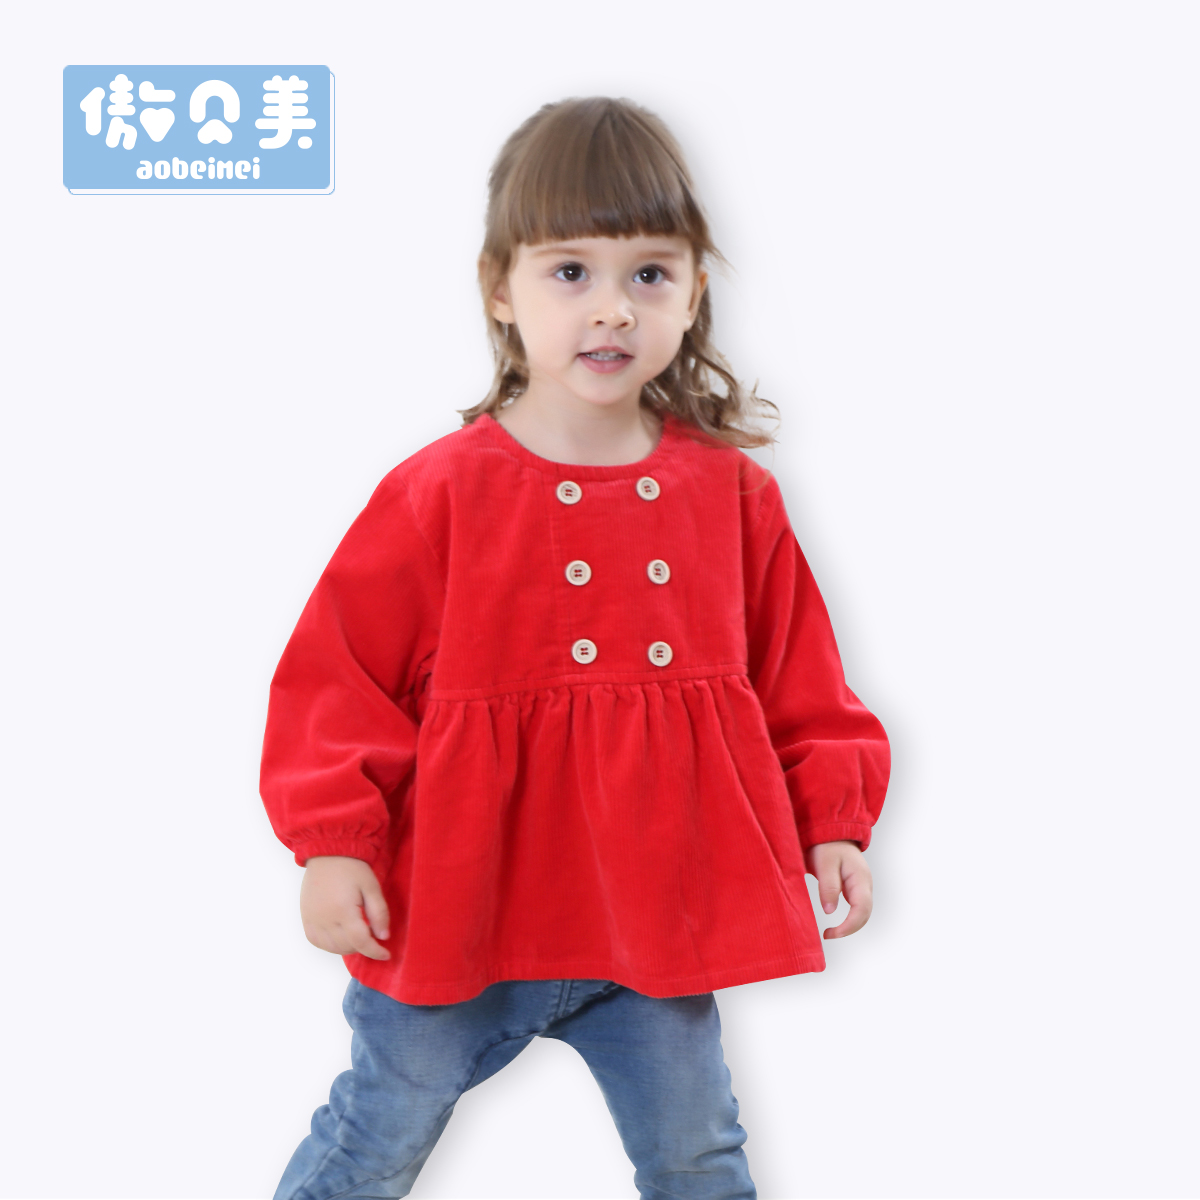 d571684908b Baby gown cotton corduroy baby children s protective clothing Apron anti-clothed  clothing long-sleeved waterproof dinner clothing 1417